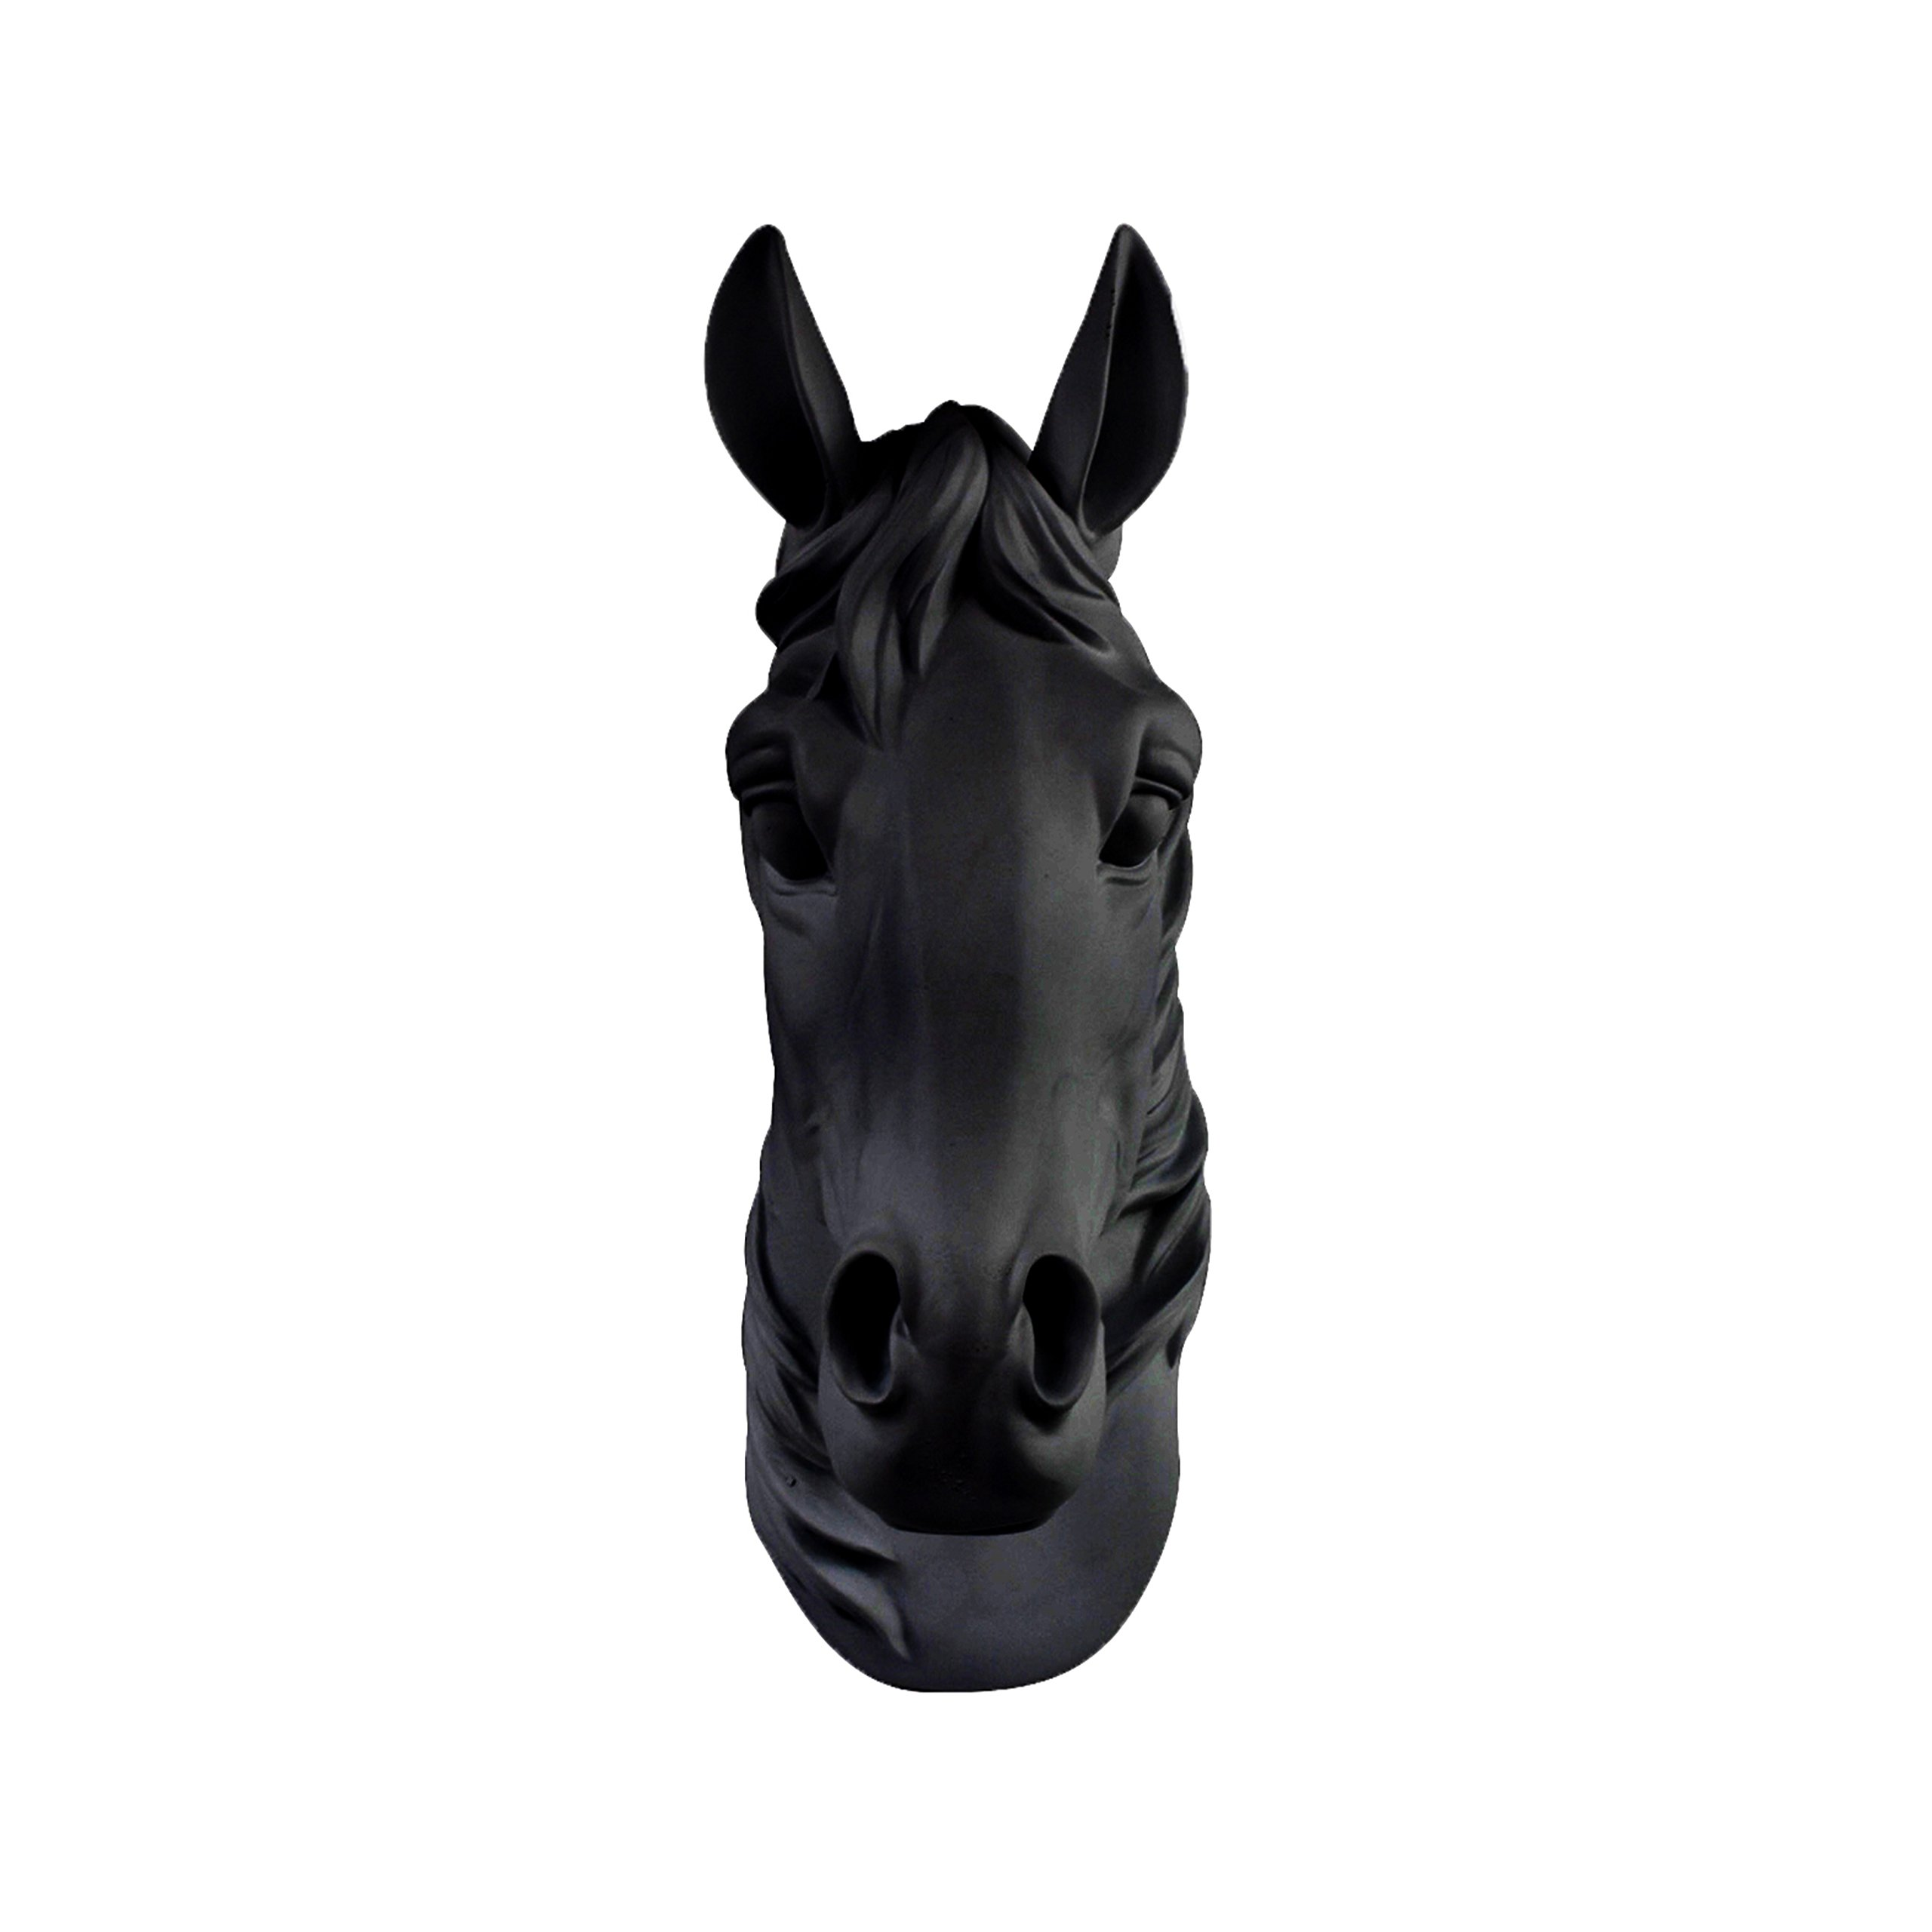 Wall Charmers Horse in Black - Faux Head Bust Fauxidermy Animal Art Taxidermy Resin Fake Decorative Mount Decor Mounted Replica by Wall Charmers (Image #1)